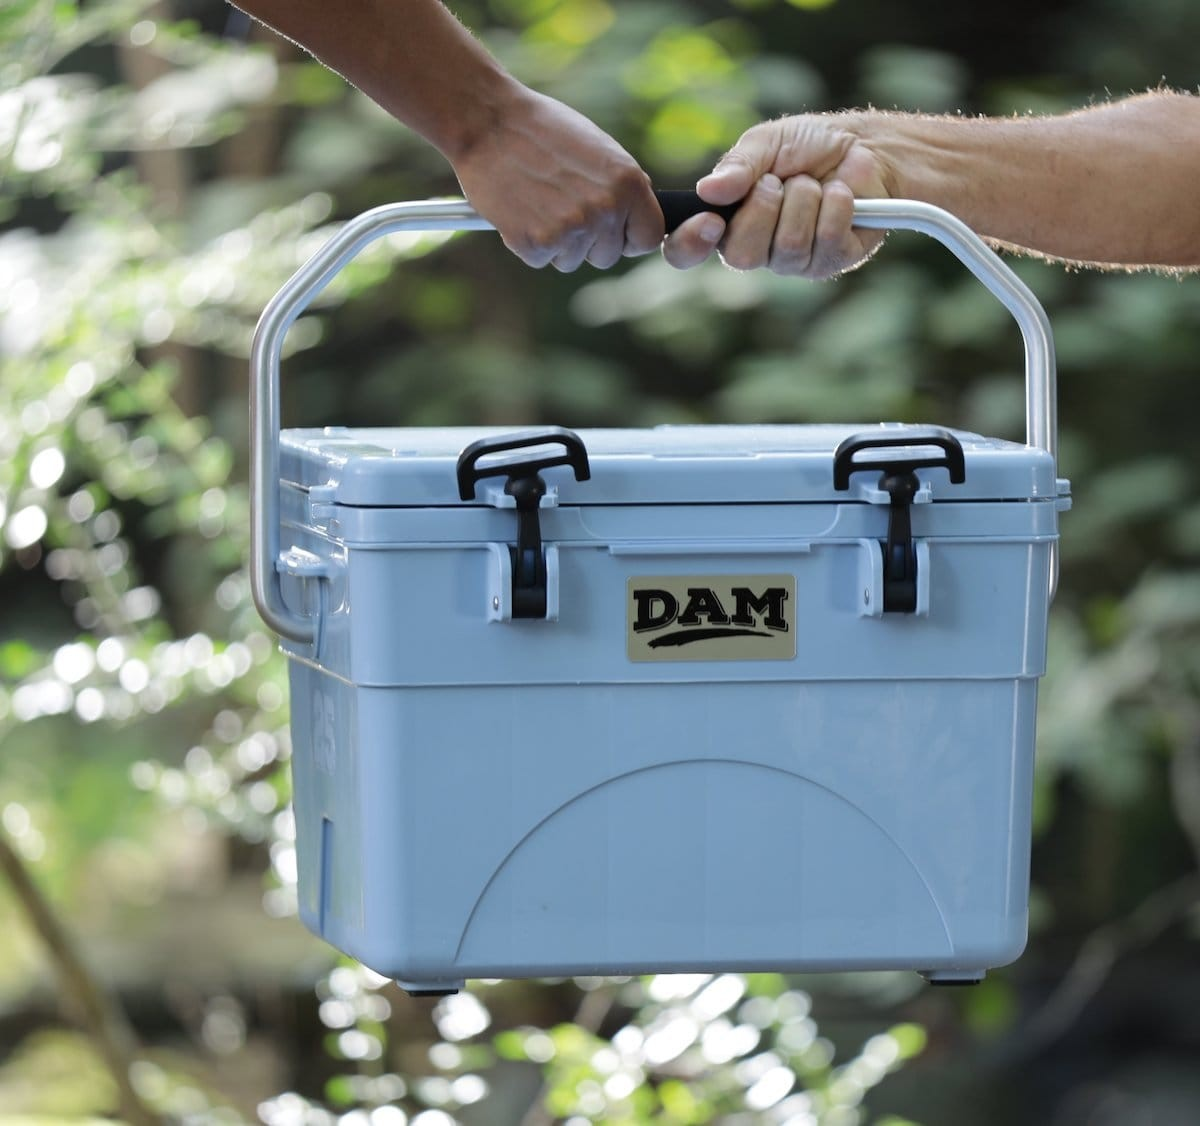 DAM Coolers vacuum-insulated cooler series keeps your food much colder for longer